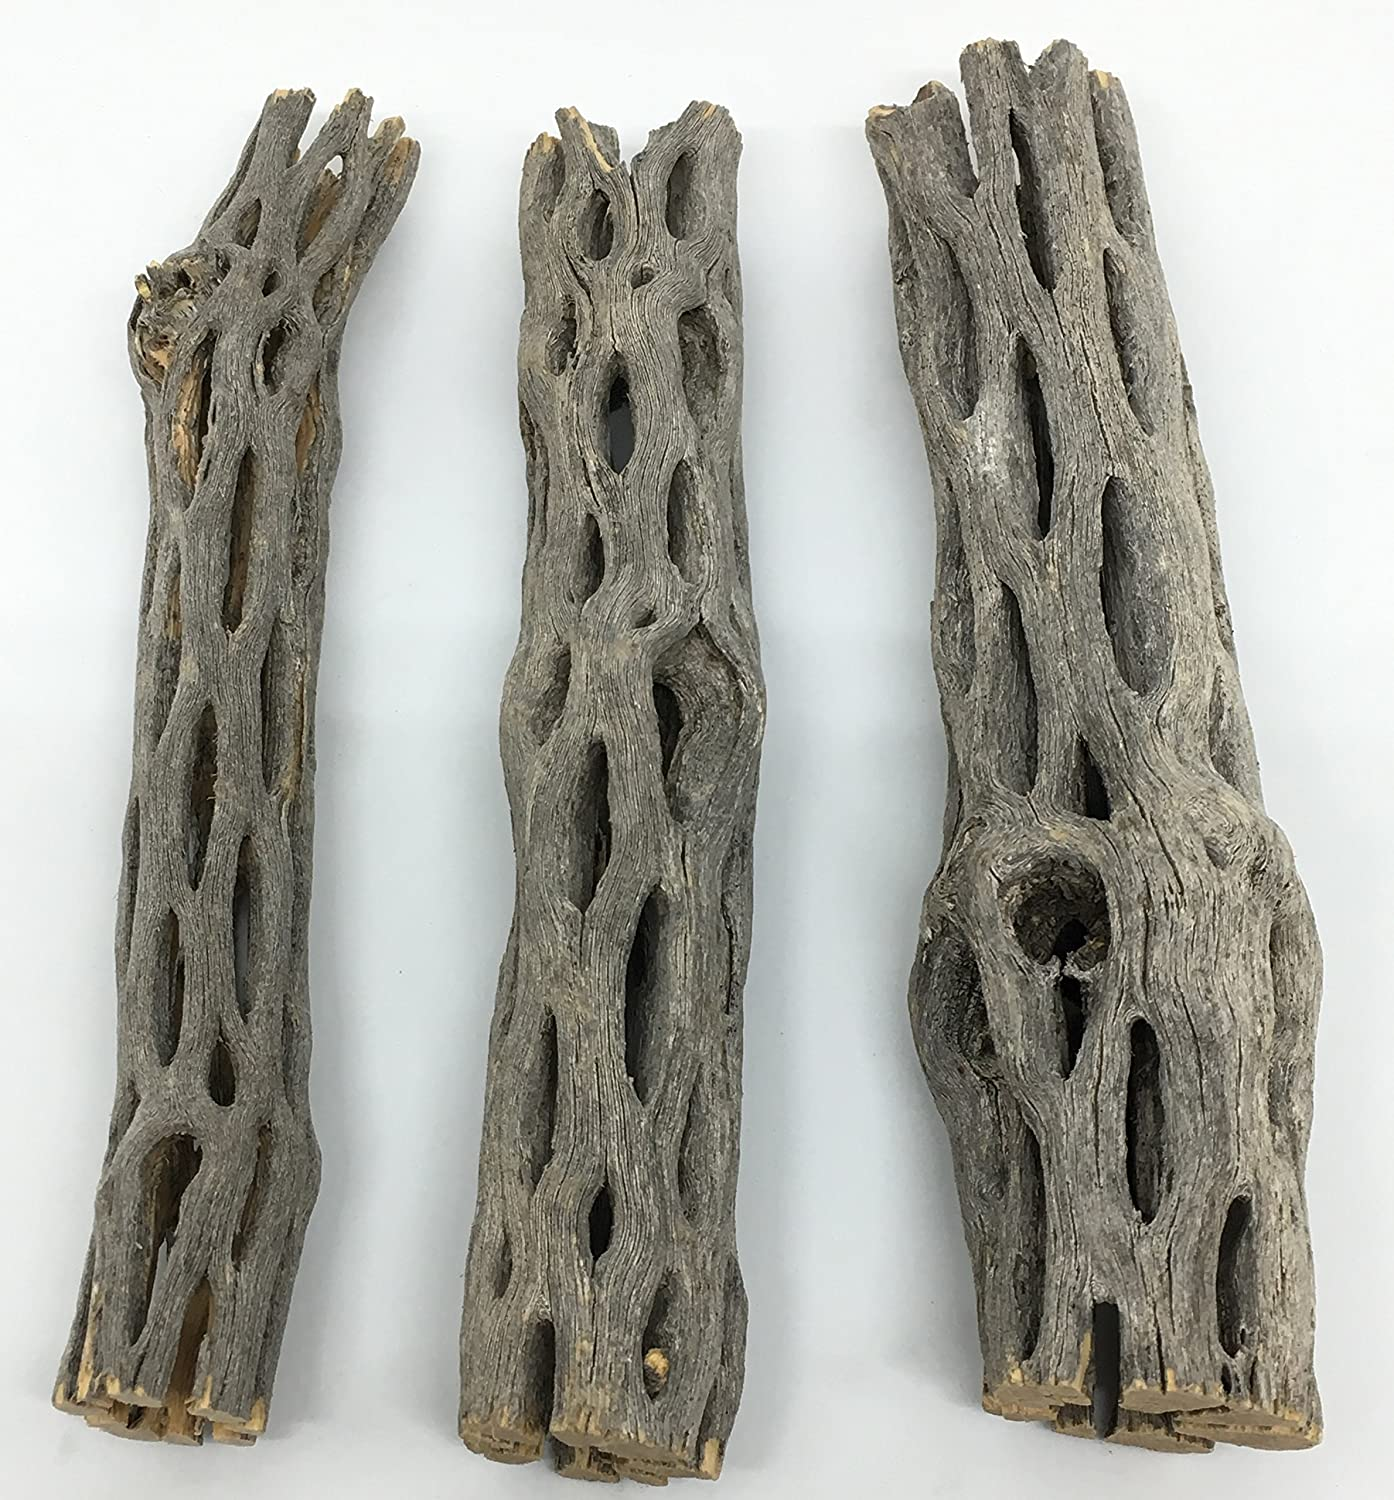 "Awesome Aquatic Natural Cholla/Choya Wood 3 Pieces 6"" for Shrimp Habitat and Food Treat Hermit Crabs Plecos Aquarium Decoration Lowers pH Hideouts and Chew Toys Reptiles Thorn Free Dried Organic"